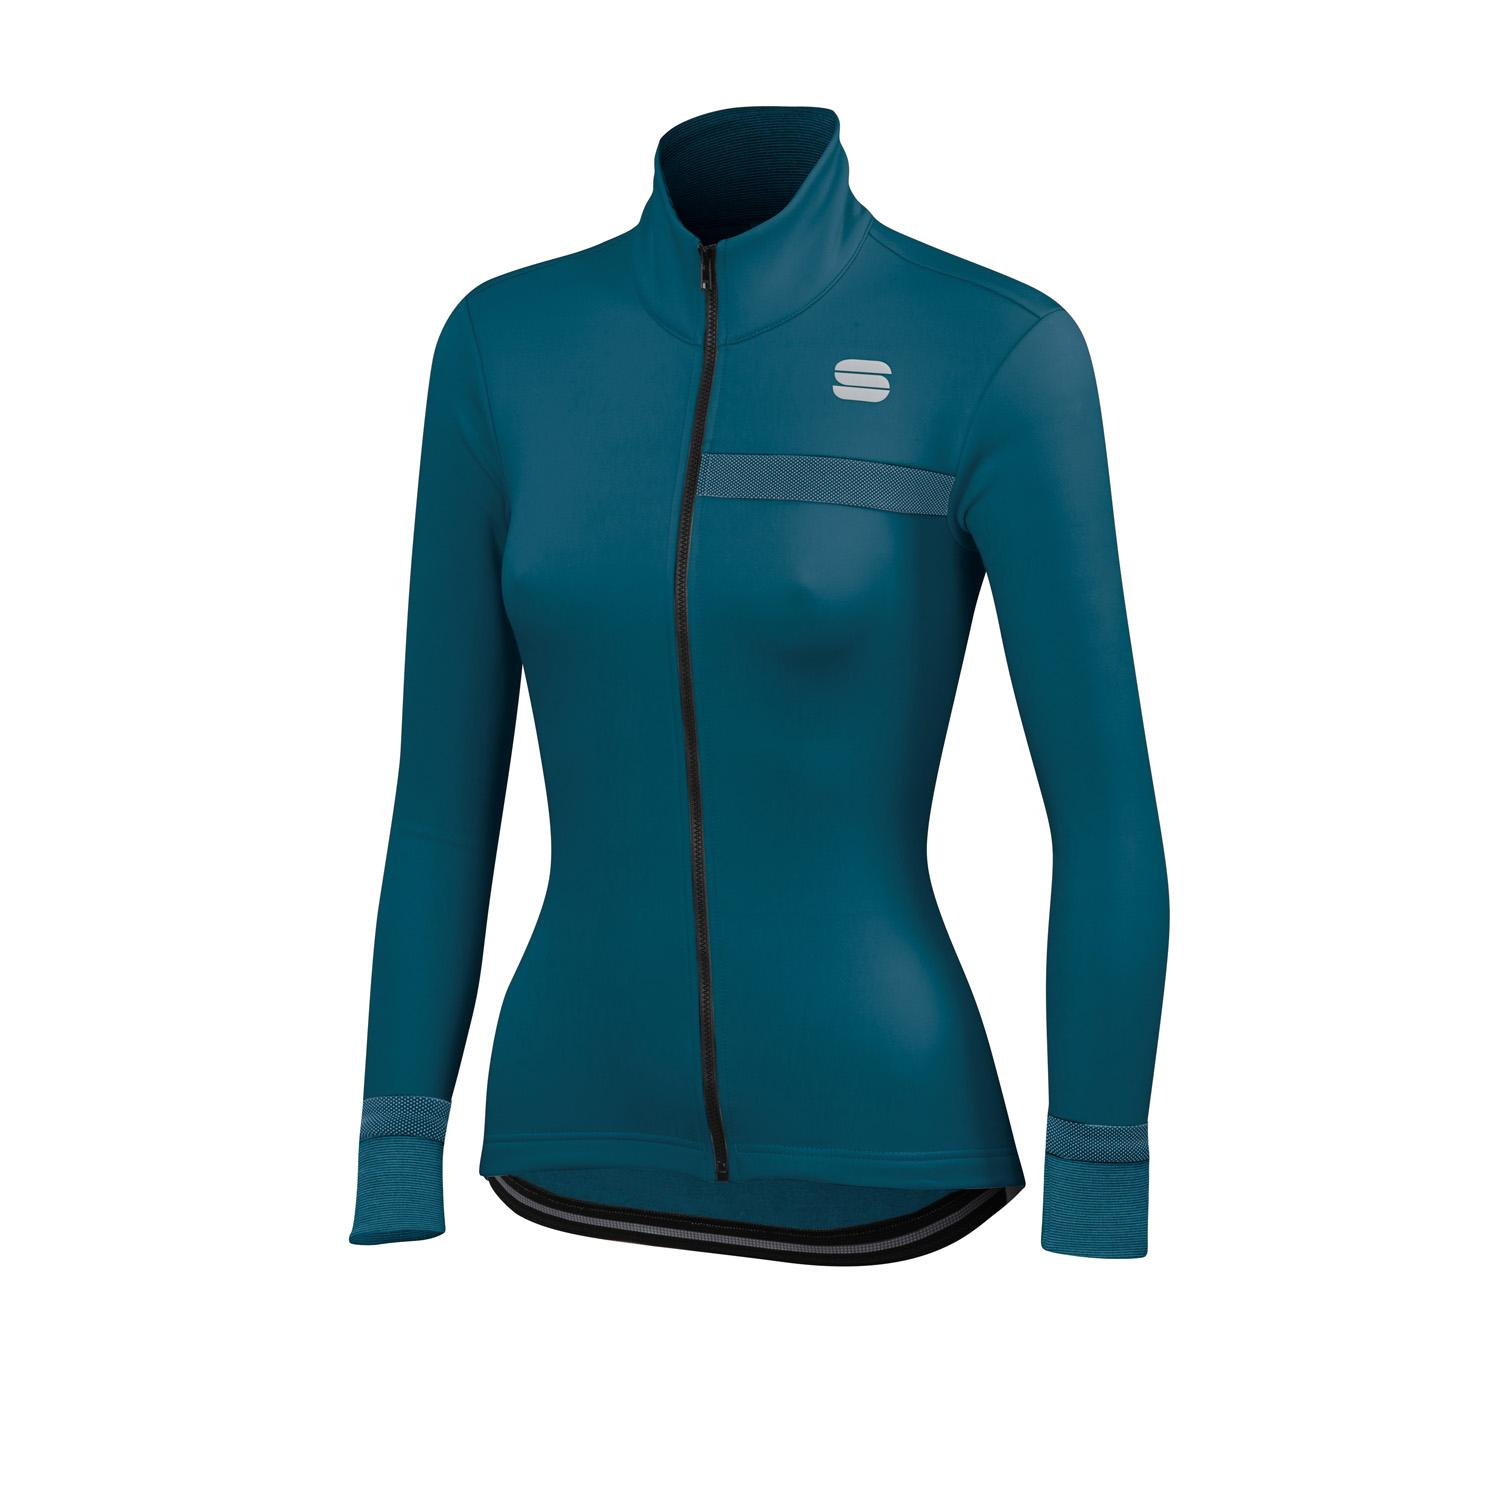 Sportful Fietsjack Dames Blauw - GIARA W SOFTSHELL JACKET BLUE CORSAIR